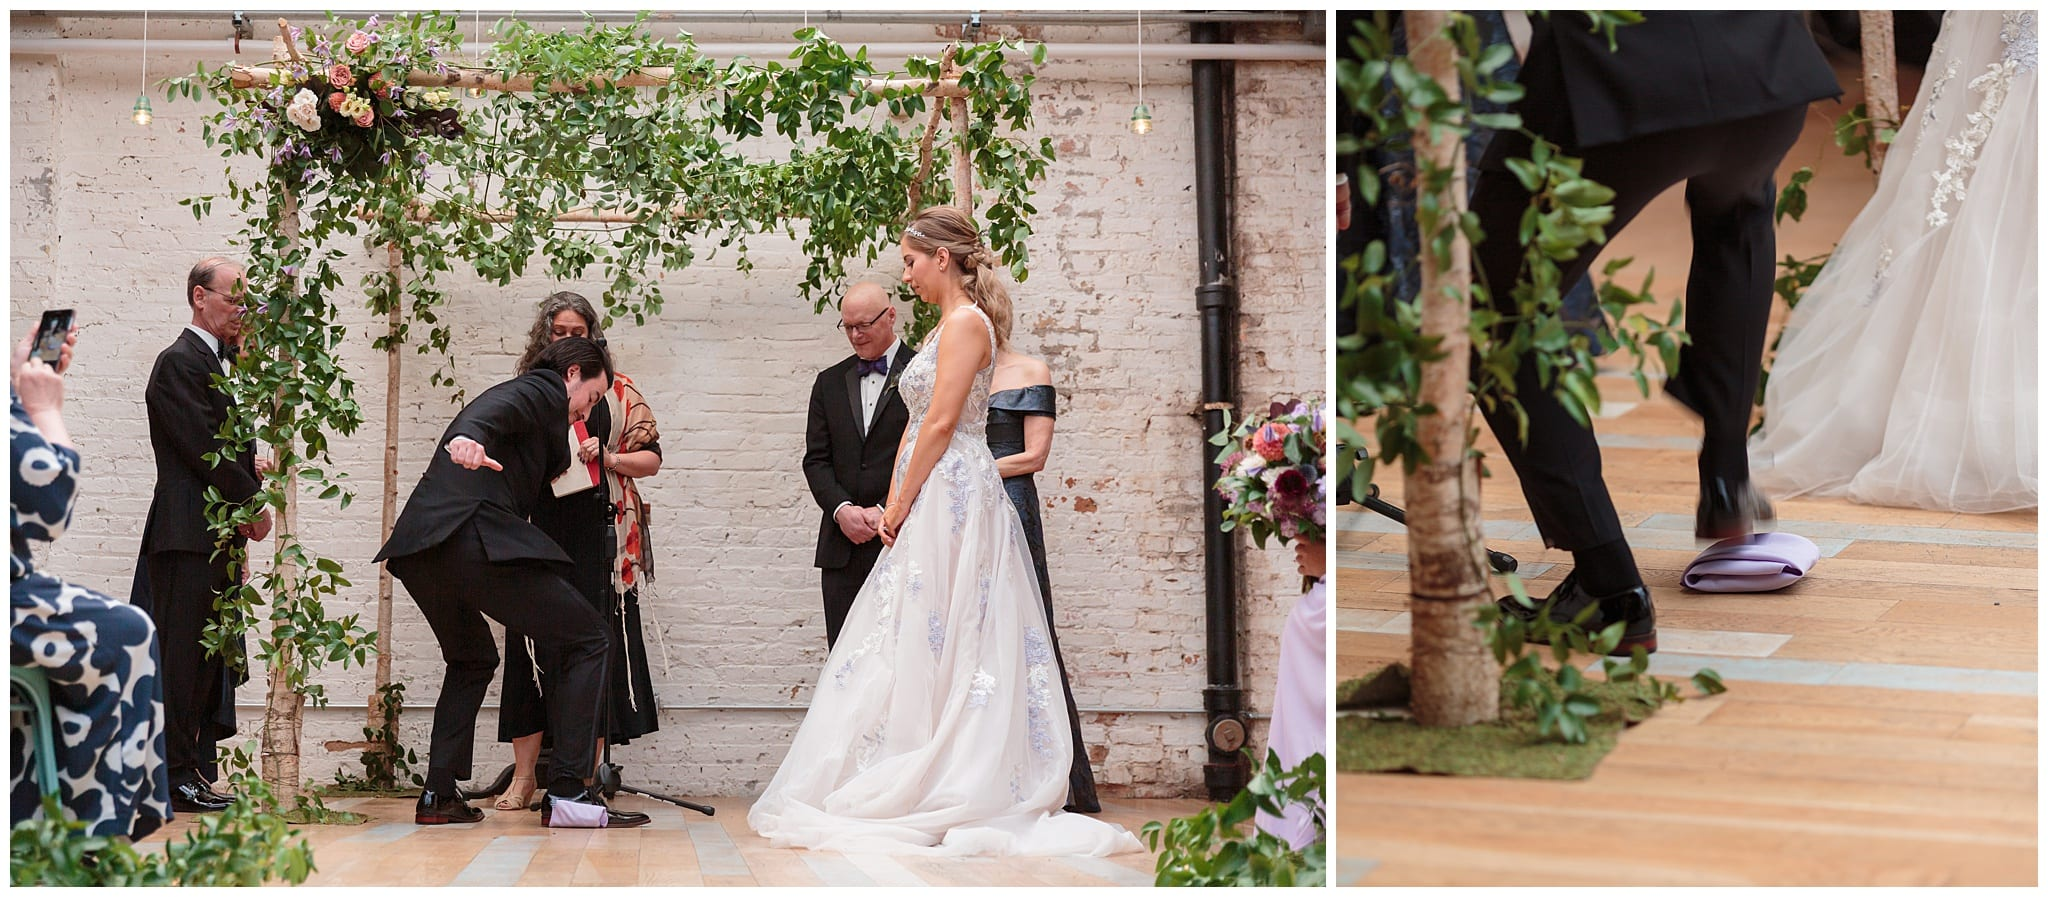 Jewish Wedding at the Joinery - Wes Craft Photography